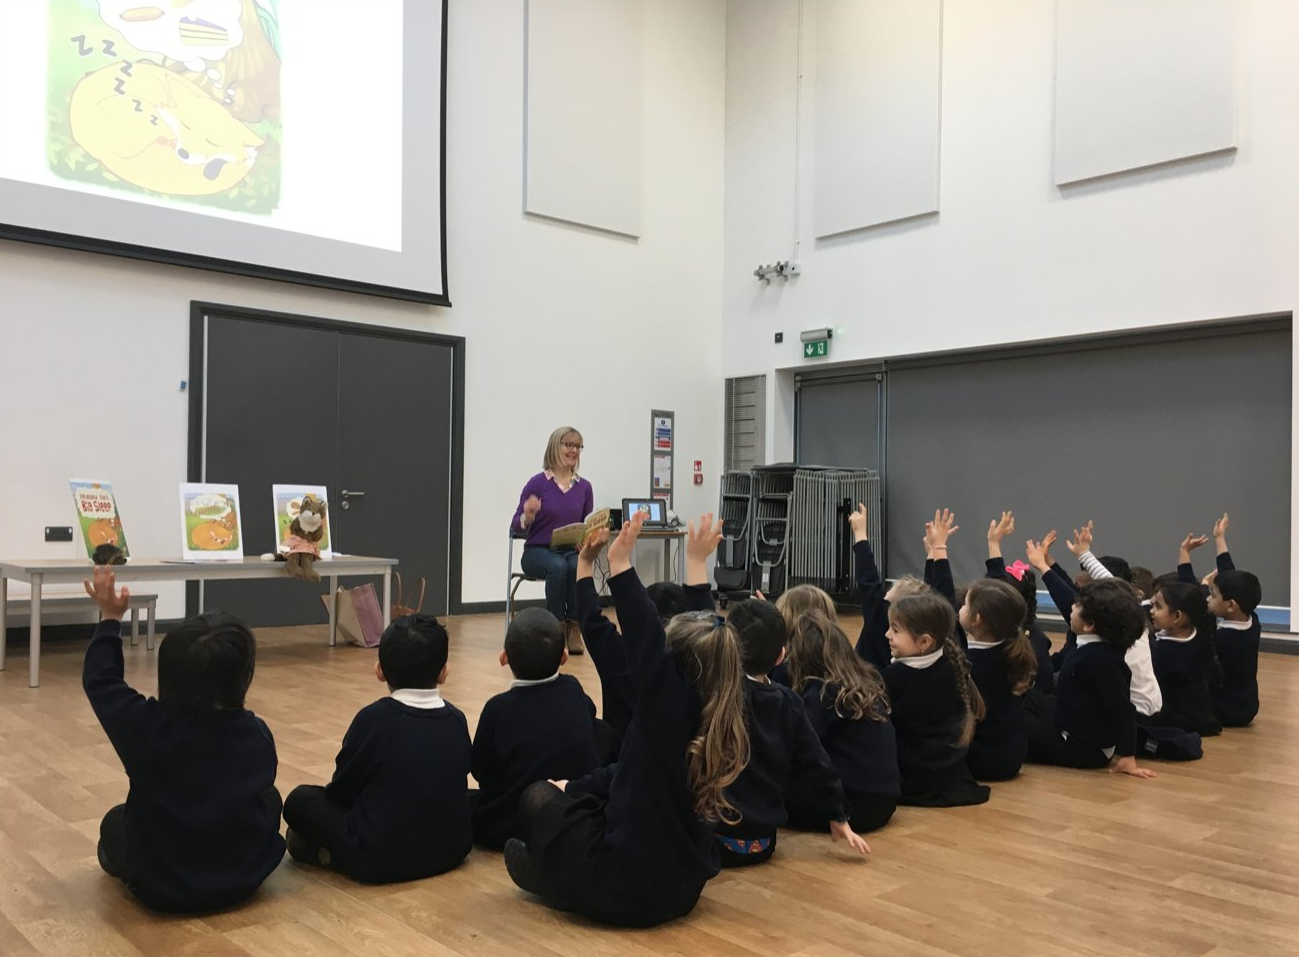 Karen Inglis reading to Reception year pupils